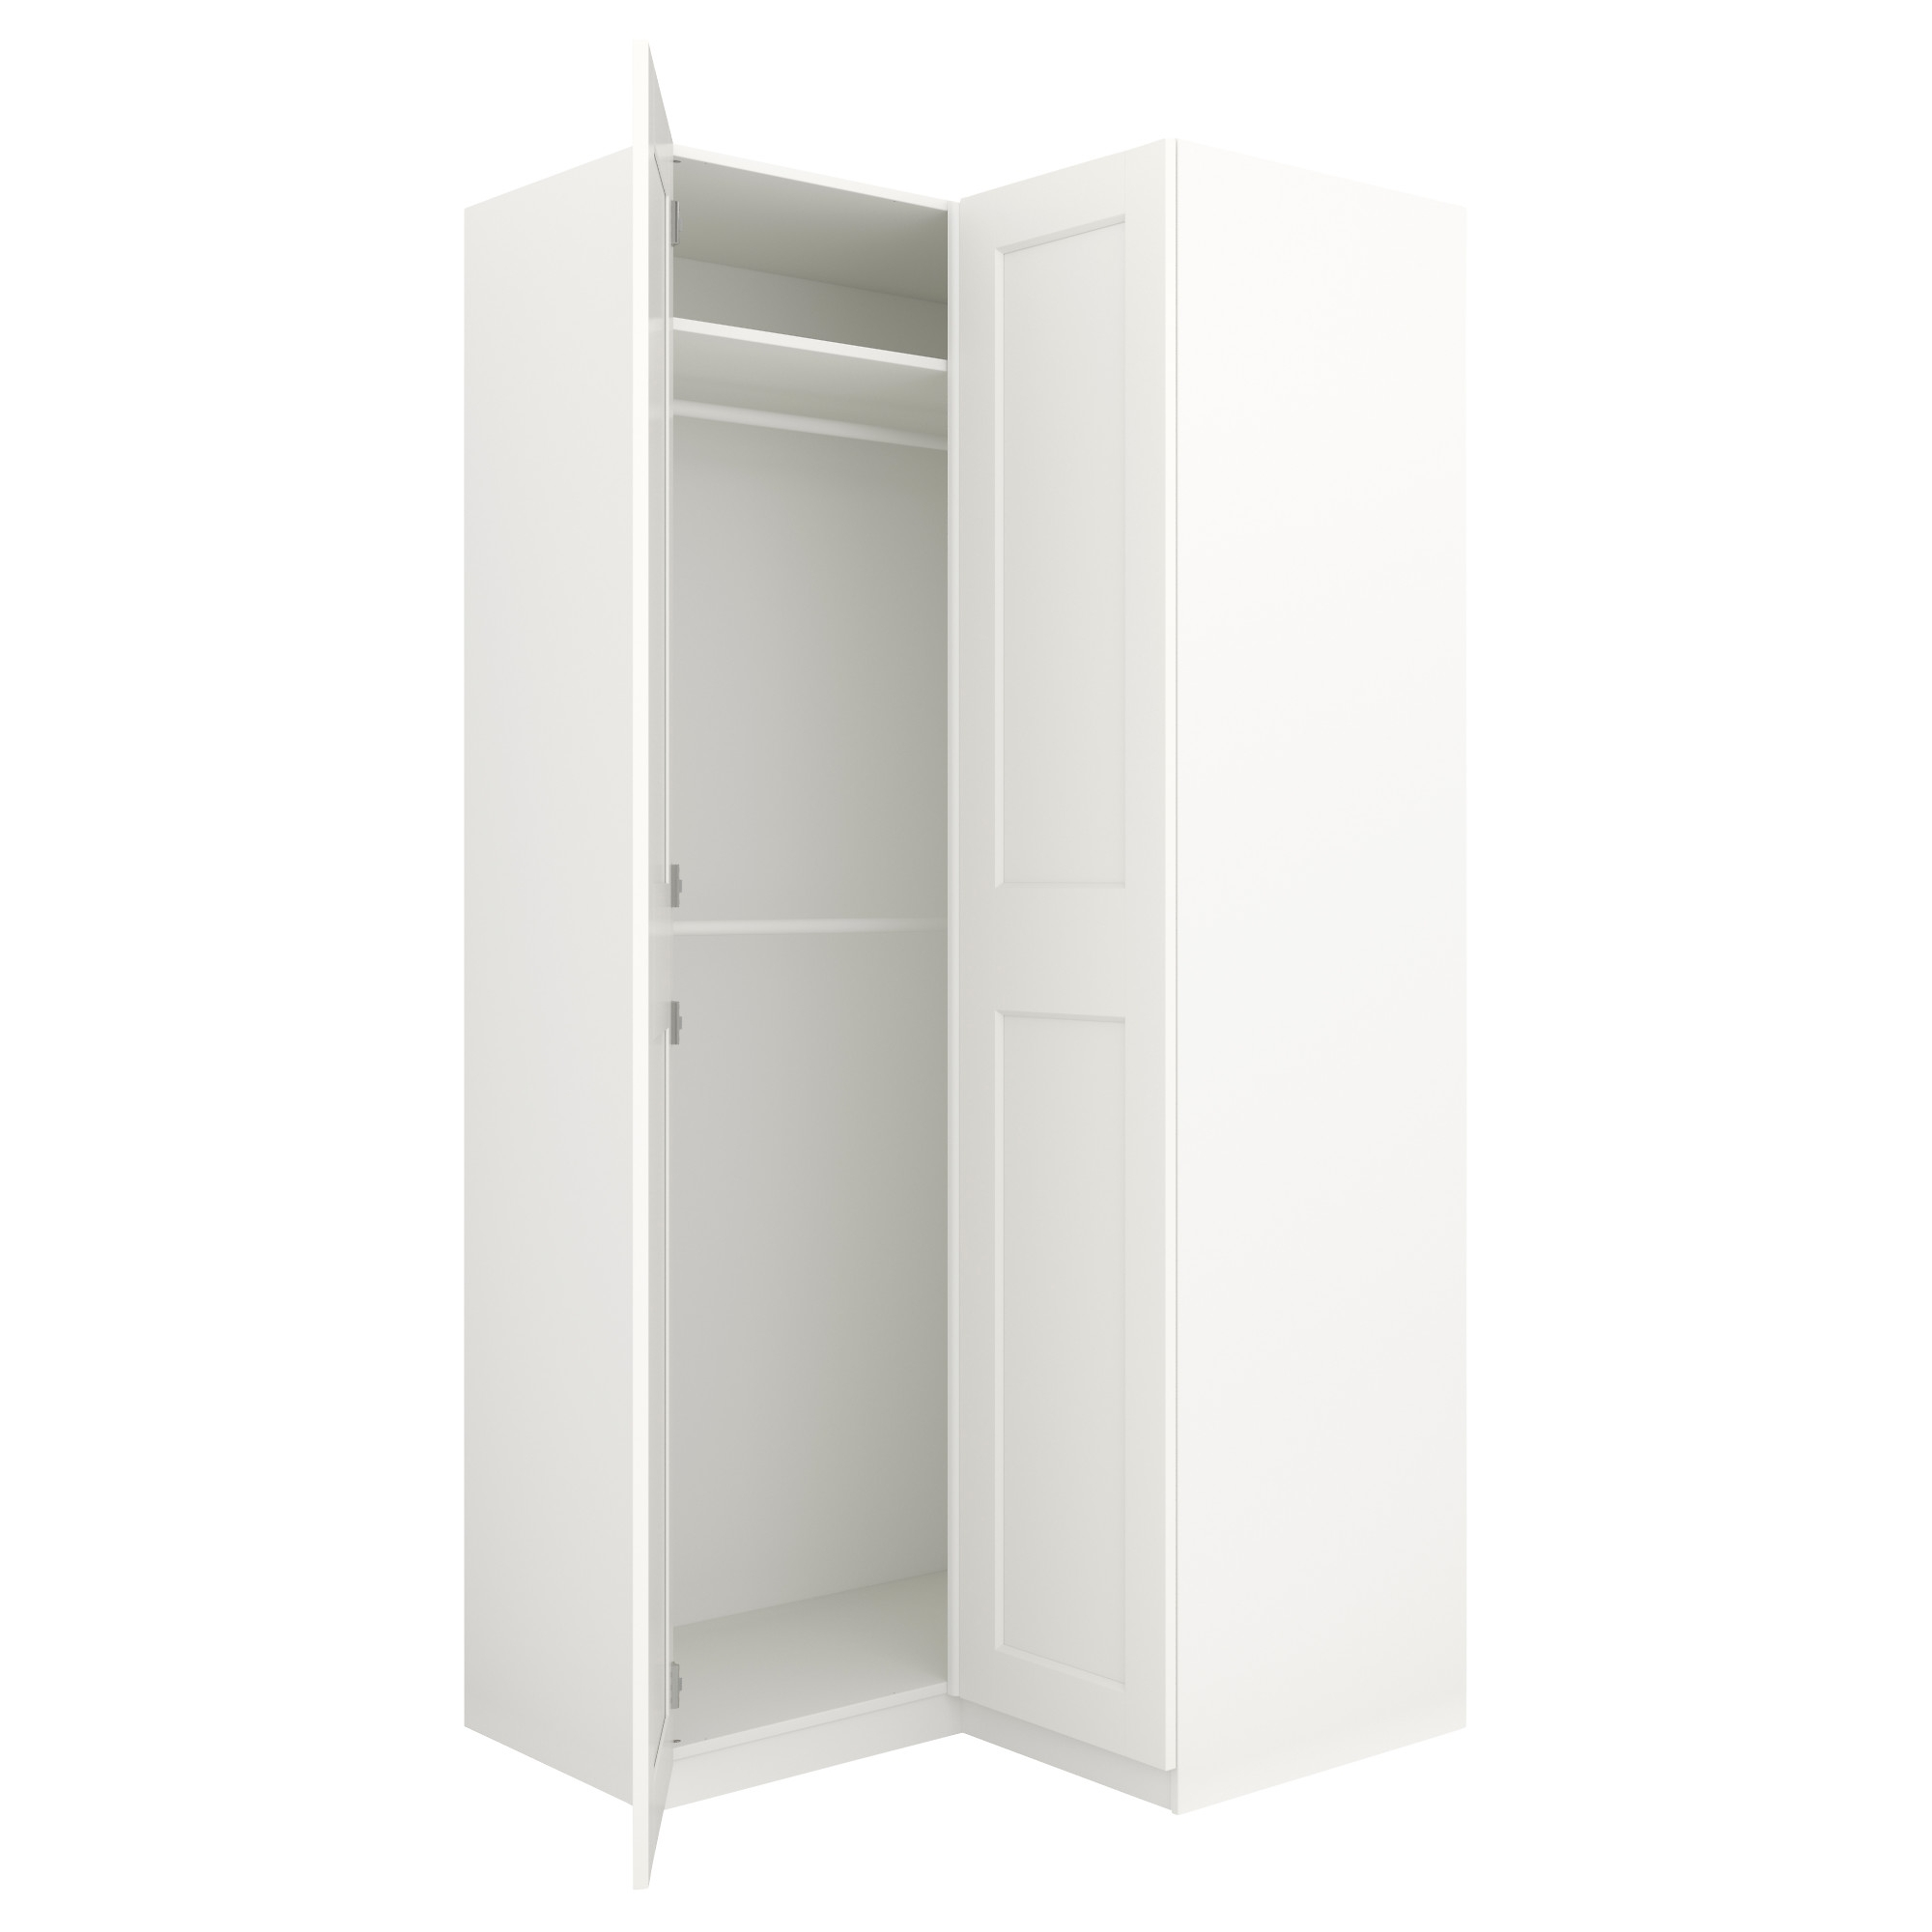 Pax Corner Wardrobe – Ikea Intended For Most Up To Date White Corner Wardrobes Units (View 10 of 15)